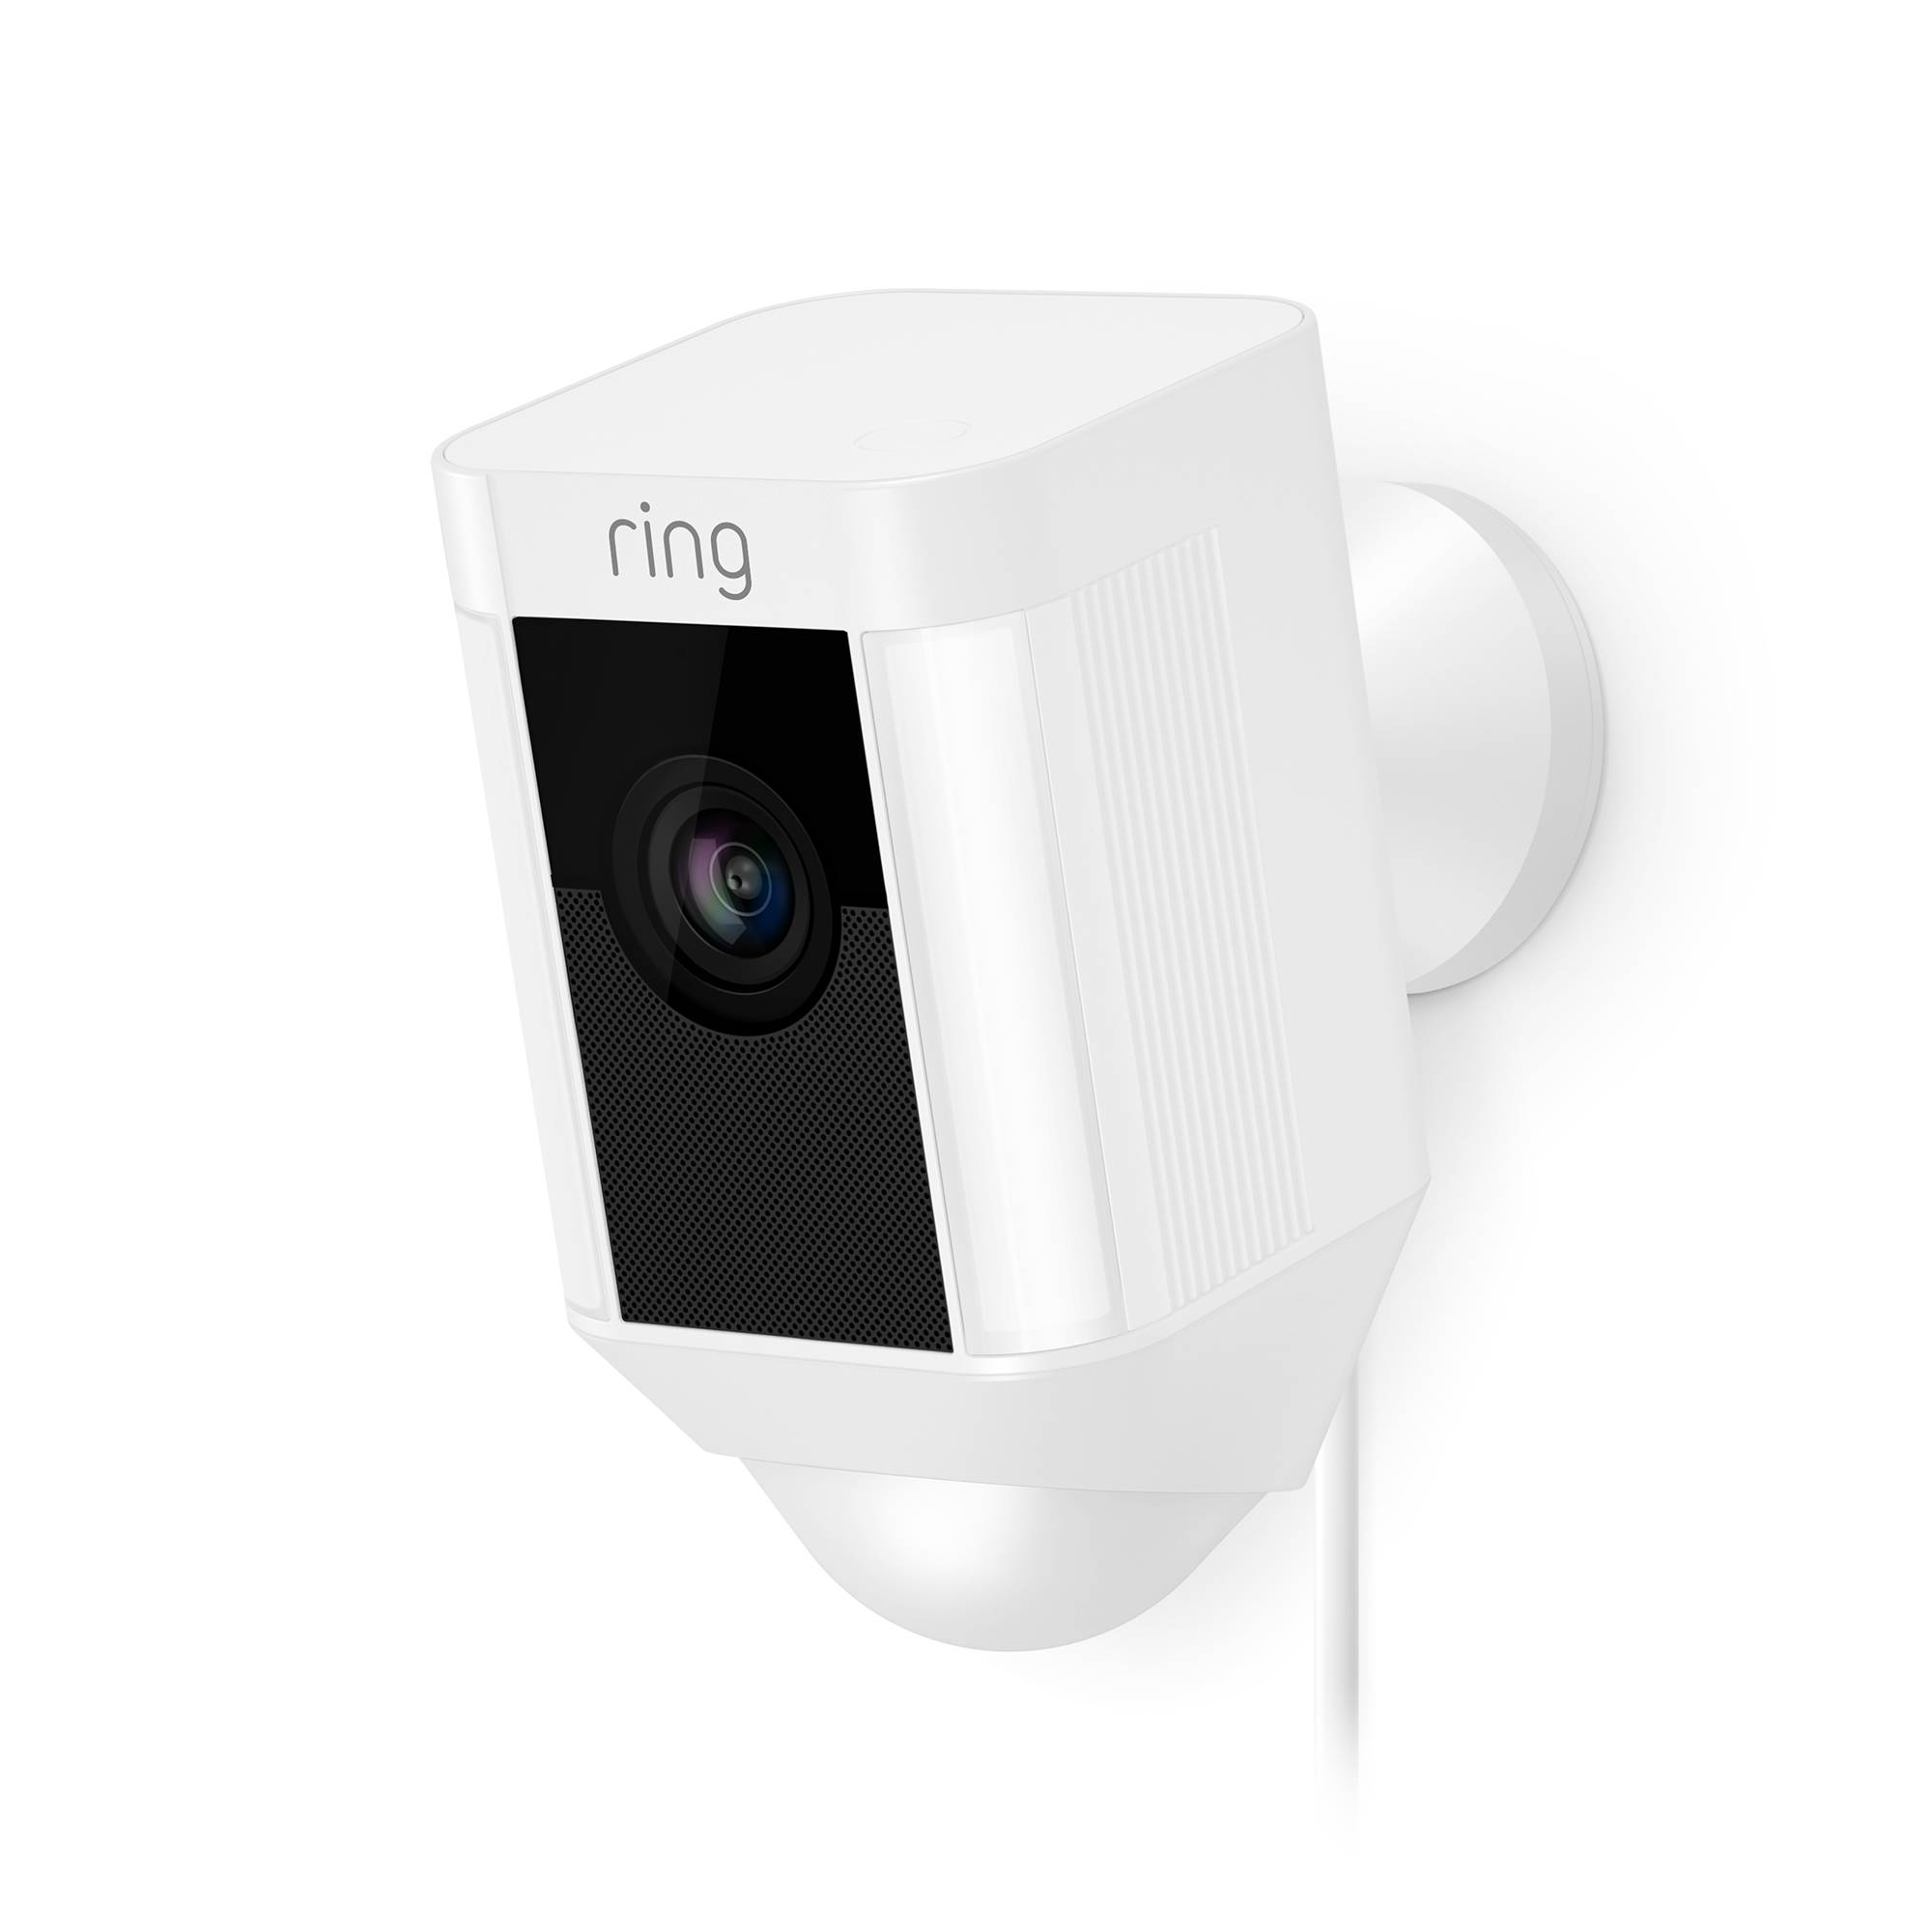 Ring Spotlight Cam Wired White by Office Depot & OfficeMax